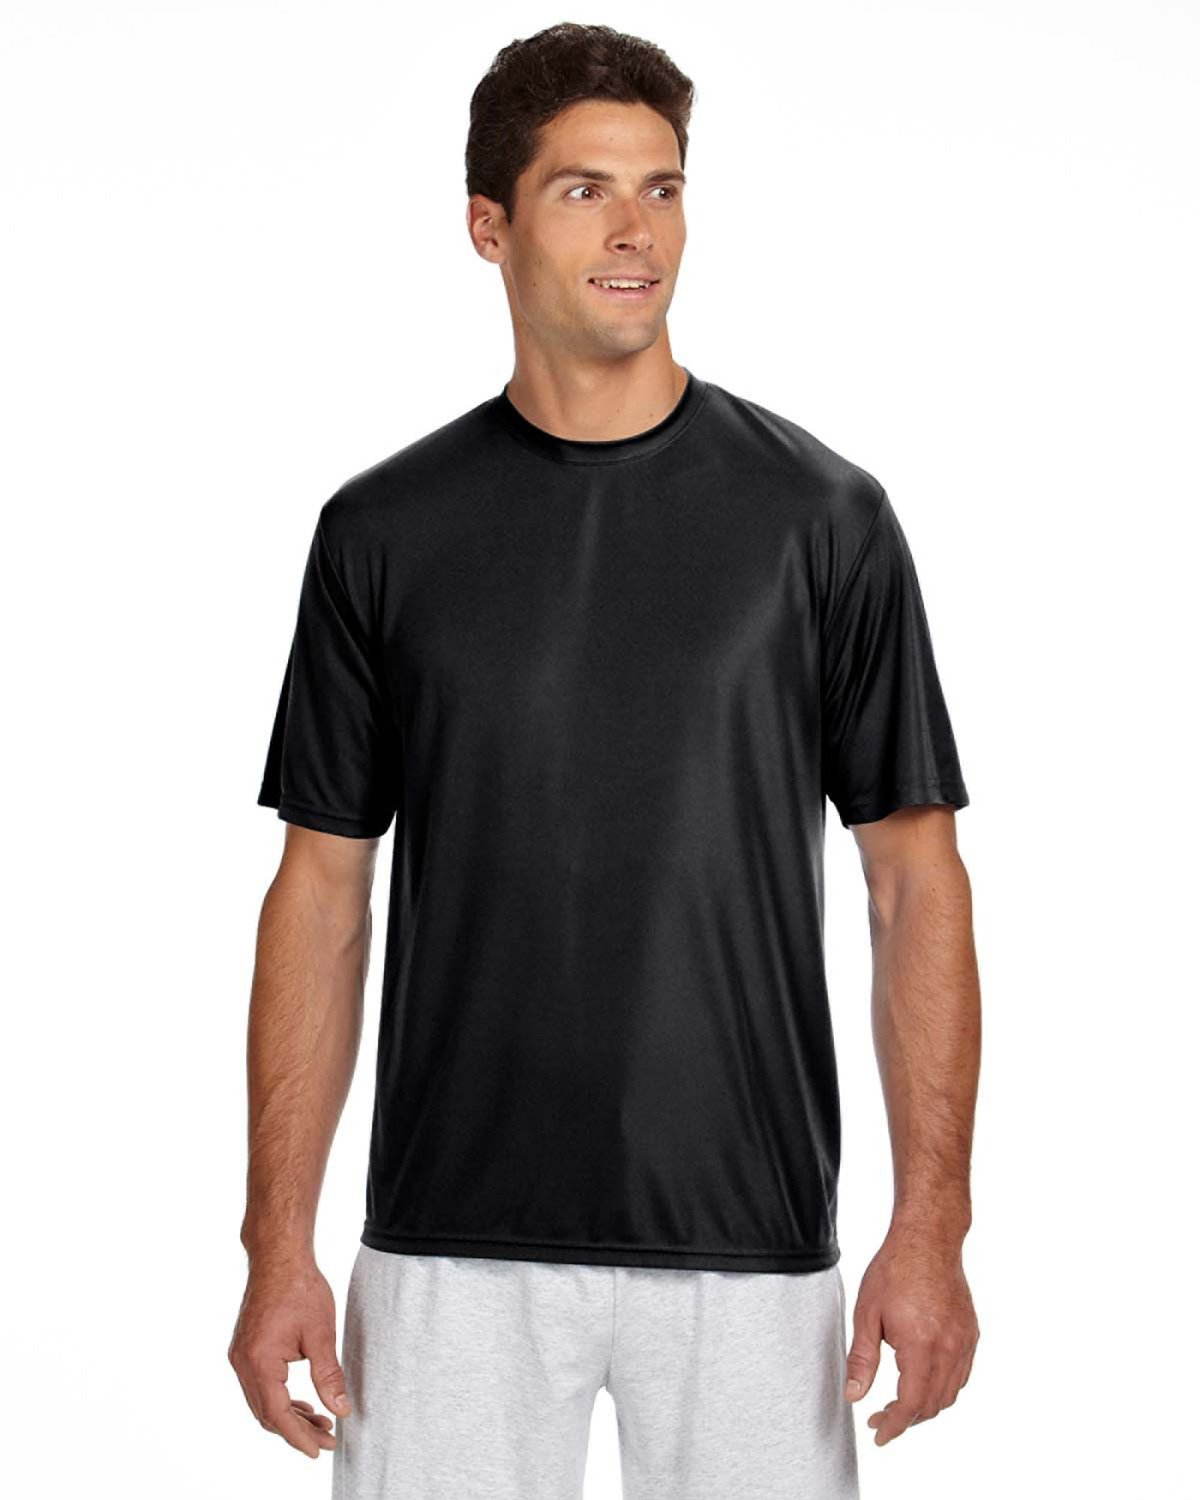 A4 Men's Cooling Performance T-Shirt BLACK